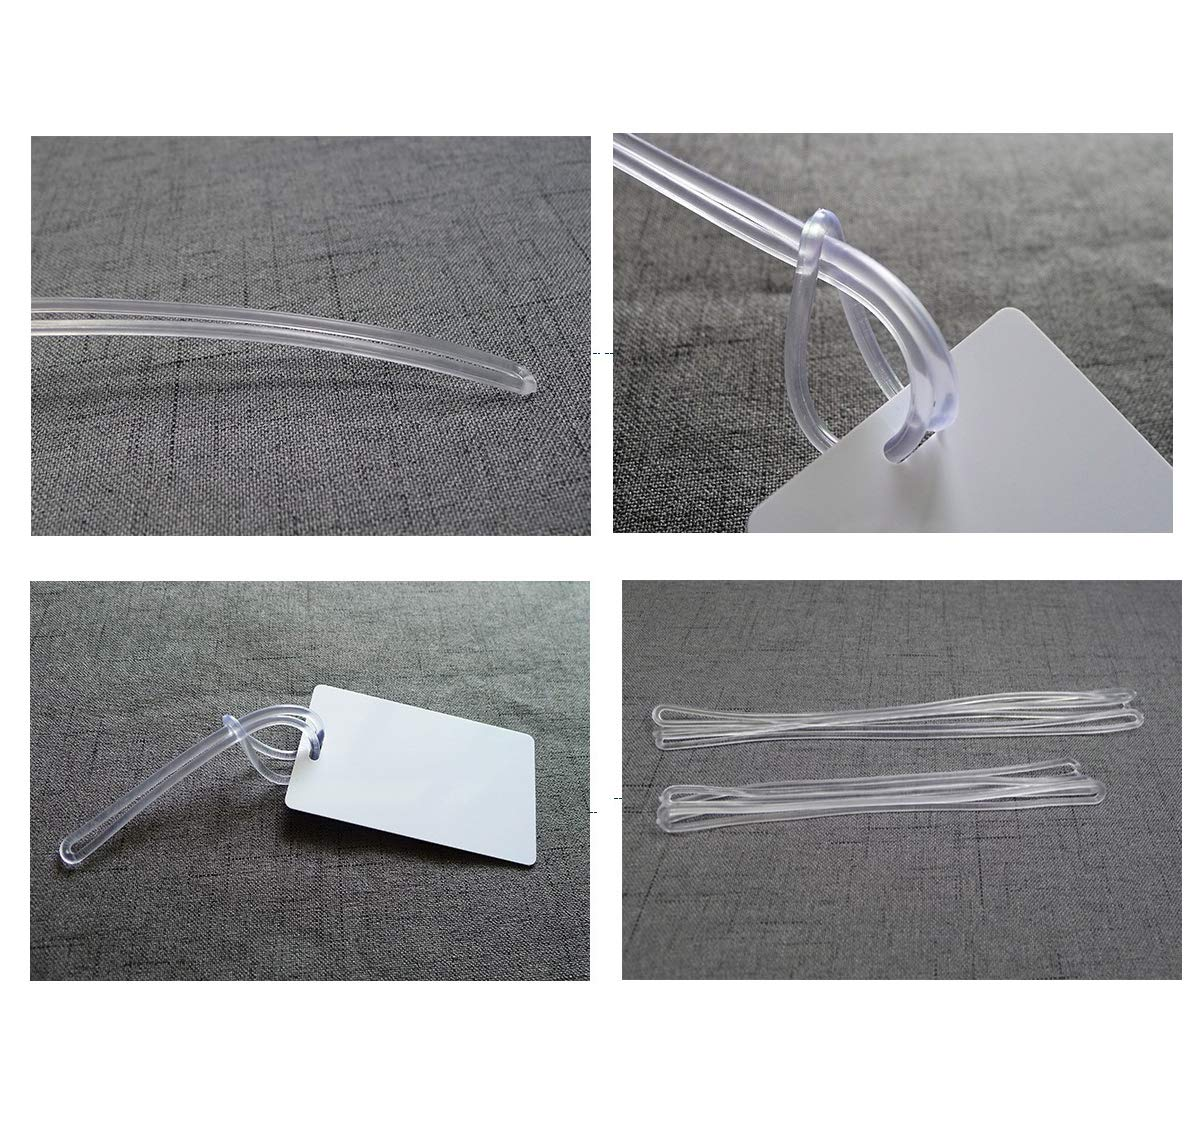 6 inch SBYURE 100 pack Clear Plastic Luggage Loop Straps,Worm Loops for Luggage Tags